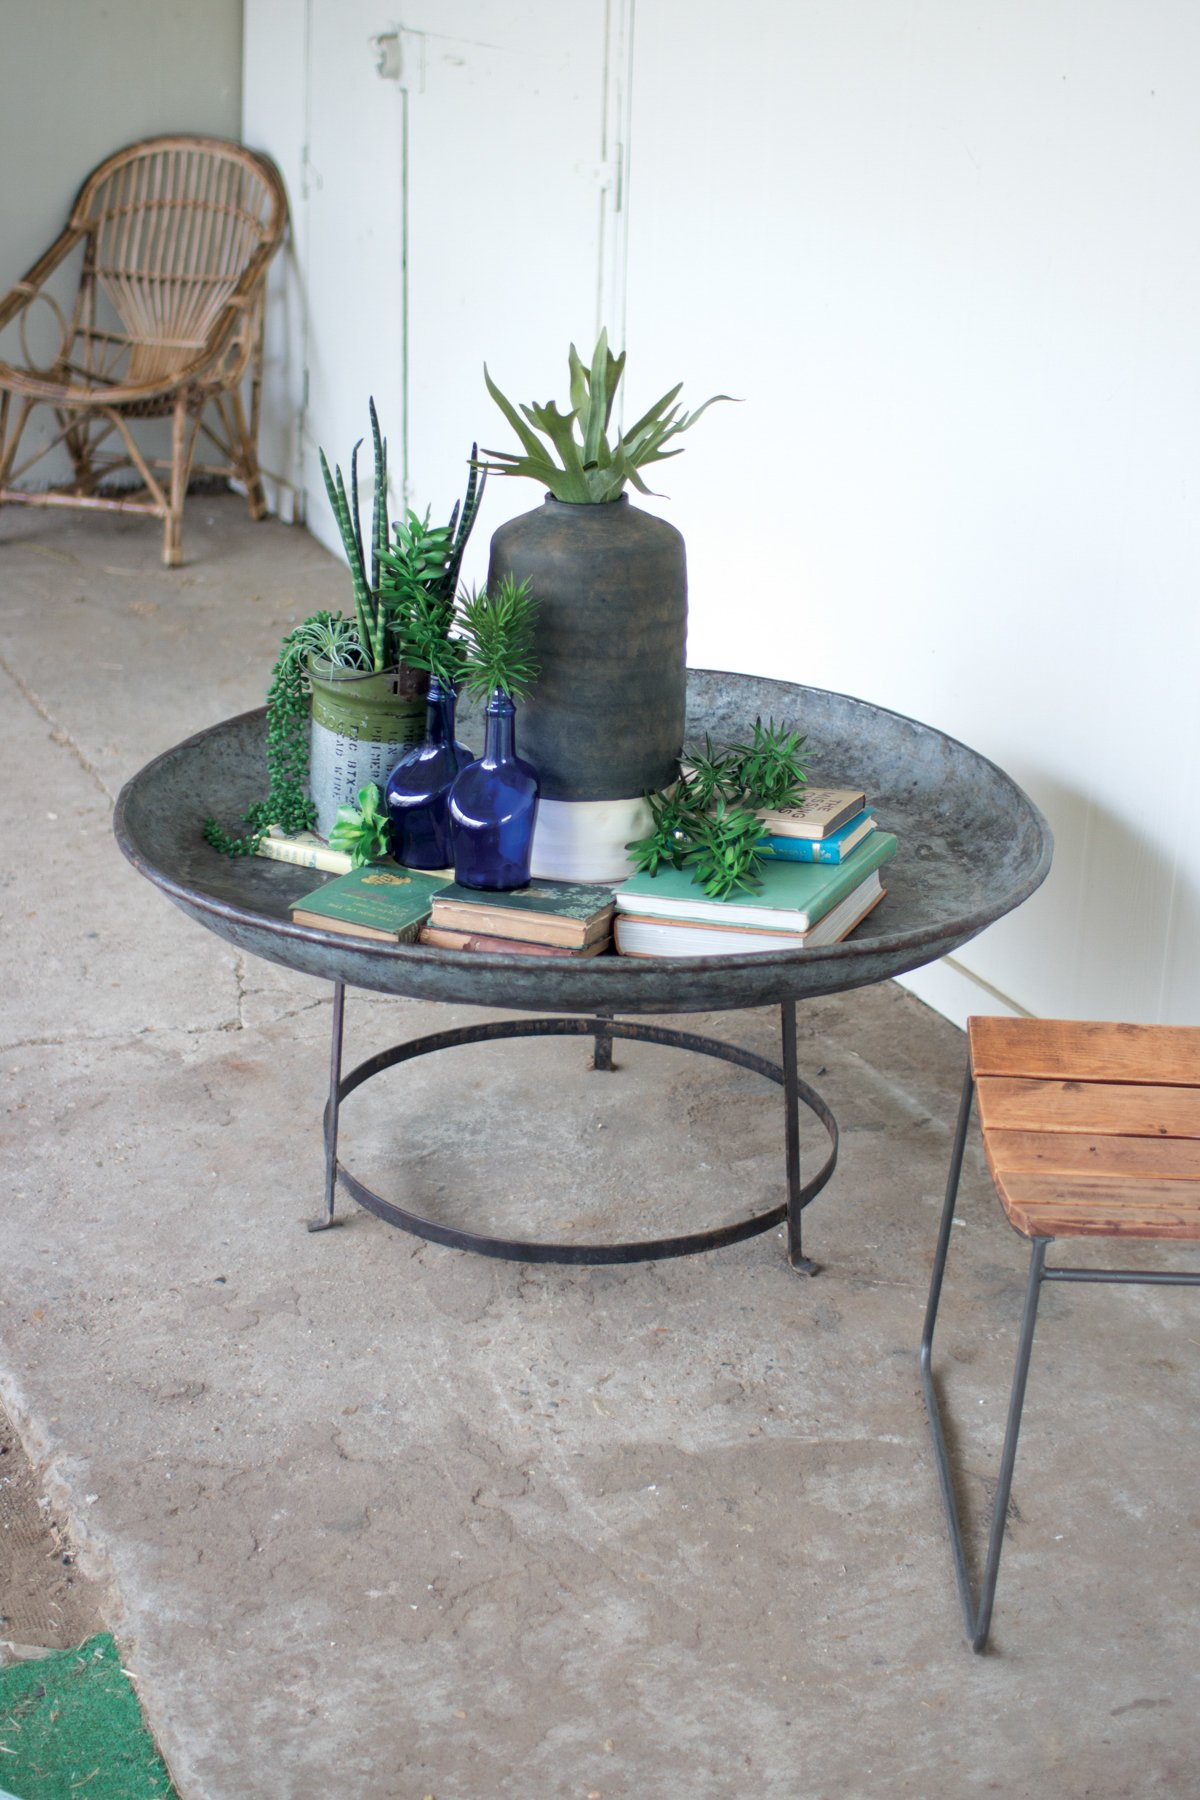 Antique Round Bowl With Iron Base Fire Pit Coffee Table Coffee Table Rustic Coffee Tables [ 1800 x 1200 Pixel ]